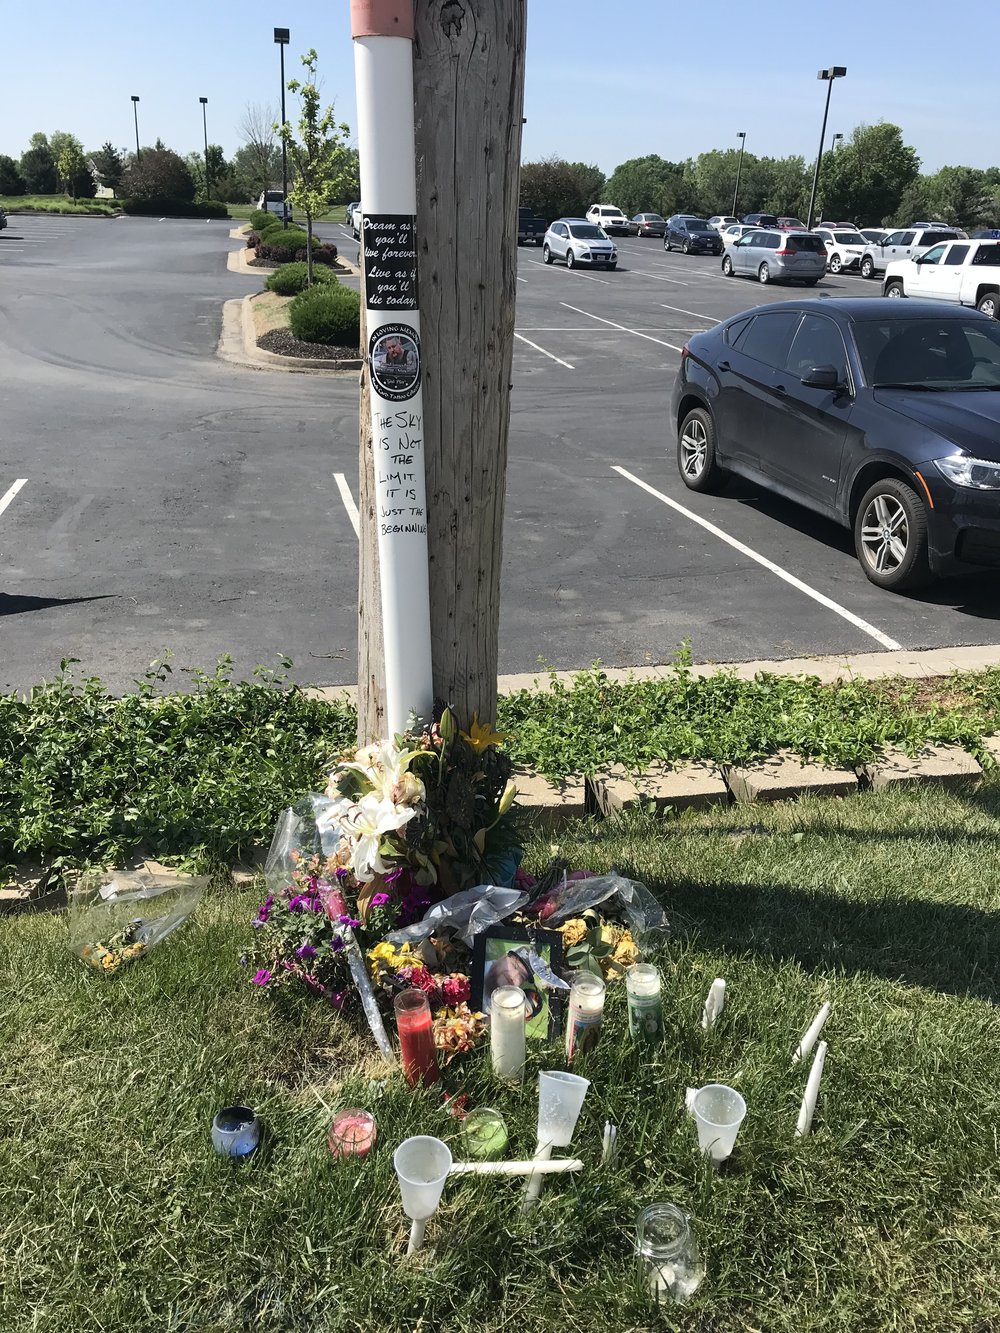 CODY THORN/Citizen photo A makeshift memorial has been made just outside of the Savers parking lot where Russell Fisk crashed his car after being shot. He died of his wounds and on Monday, May 21, Arnoldo Pompa-Rascon was charged with murder in Platte County.